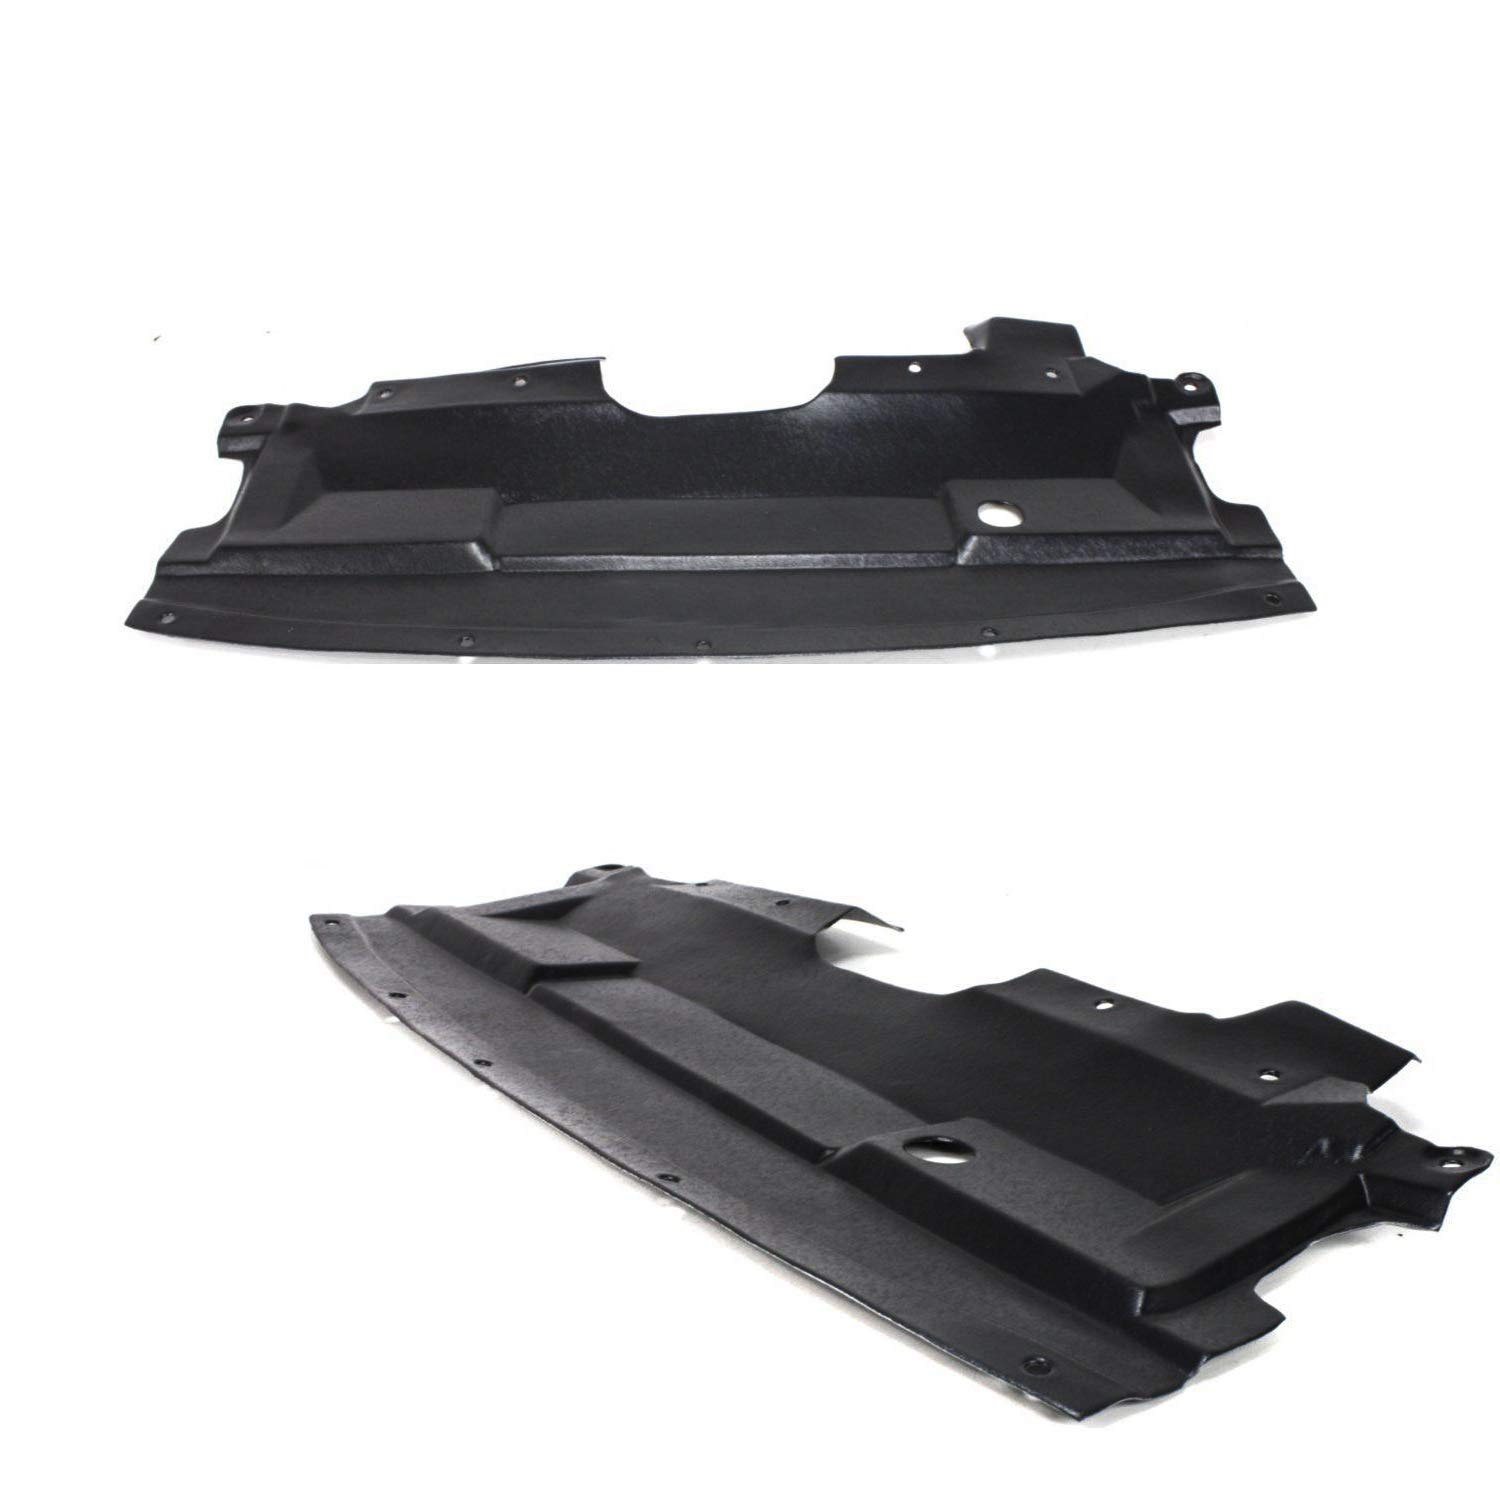 Make Auto Parts Manufacturing Set of 2 Front Engine Under Cover Splash Shield for Nissan Altima 2002-2006 NI1228103 for Nissan Maxima 2004-2008 NI1228108